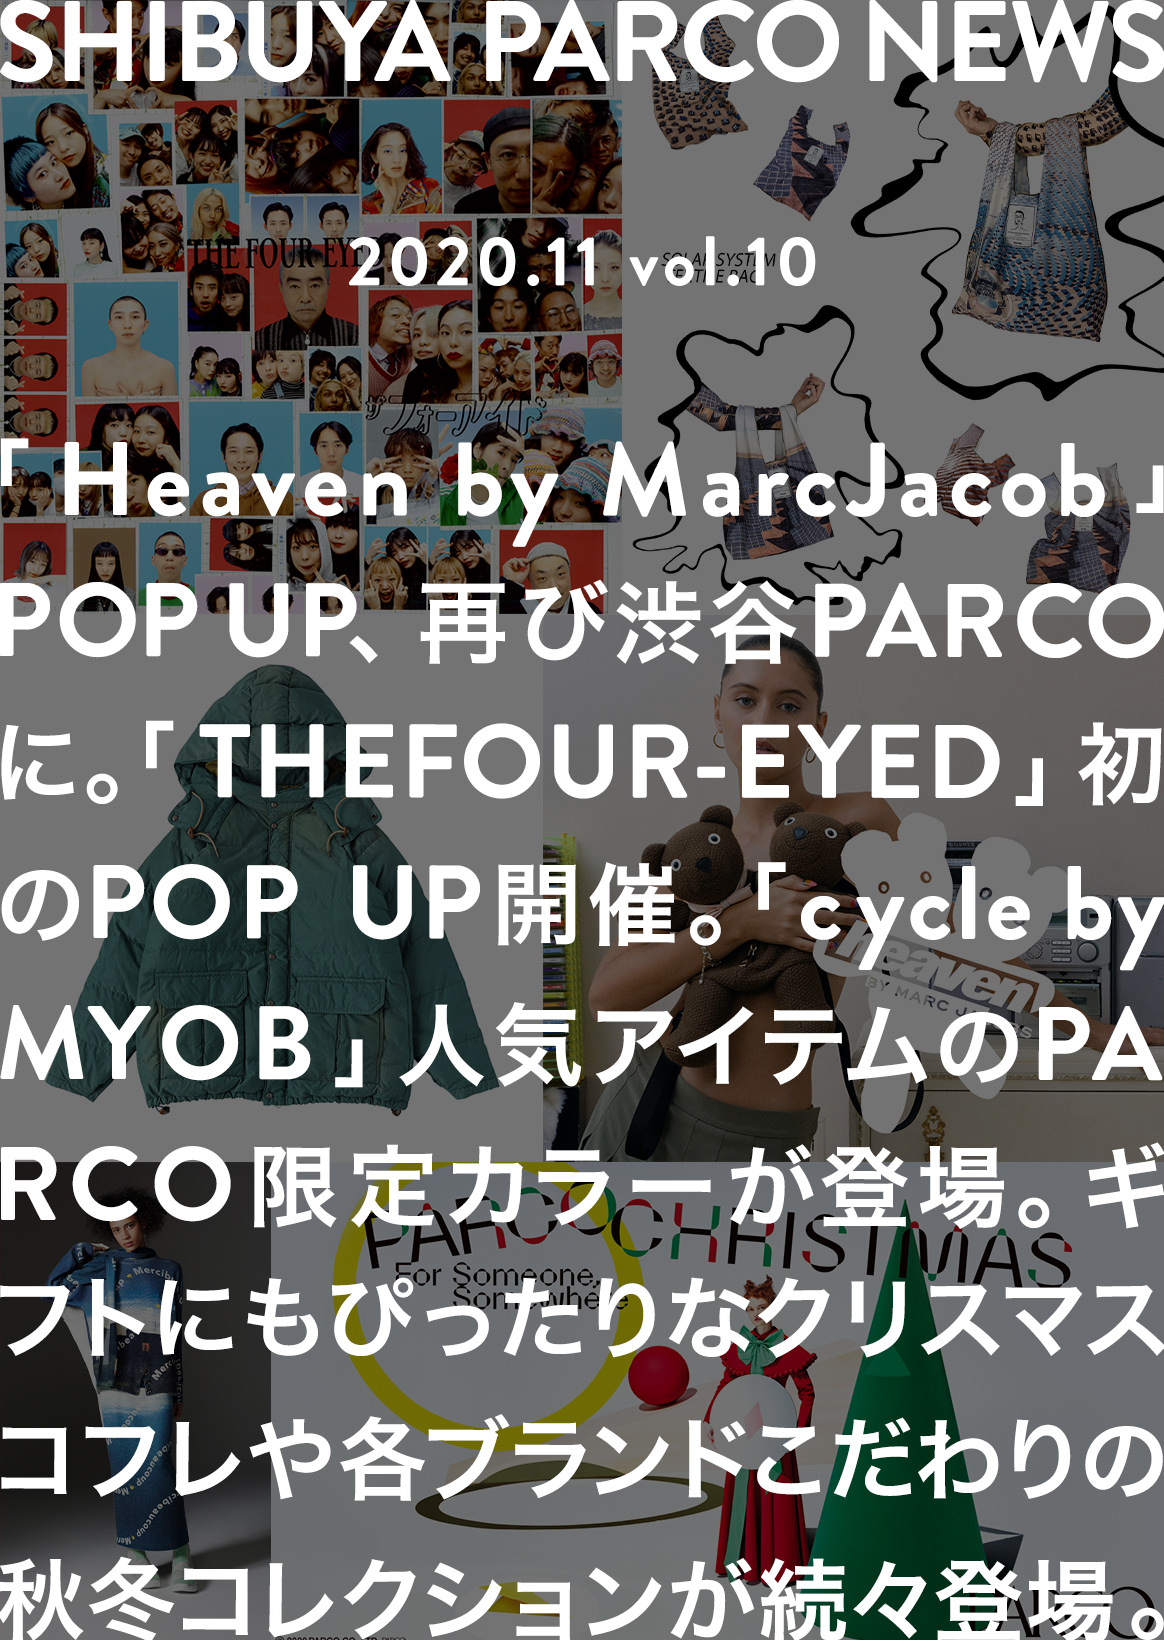 SHIBUYA PARCO NEWS-2020.11-vol.10